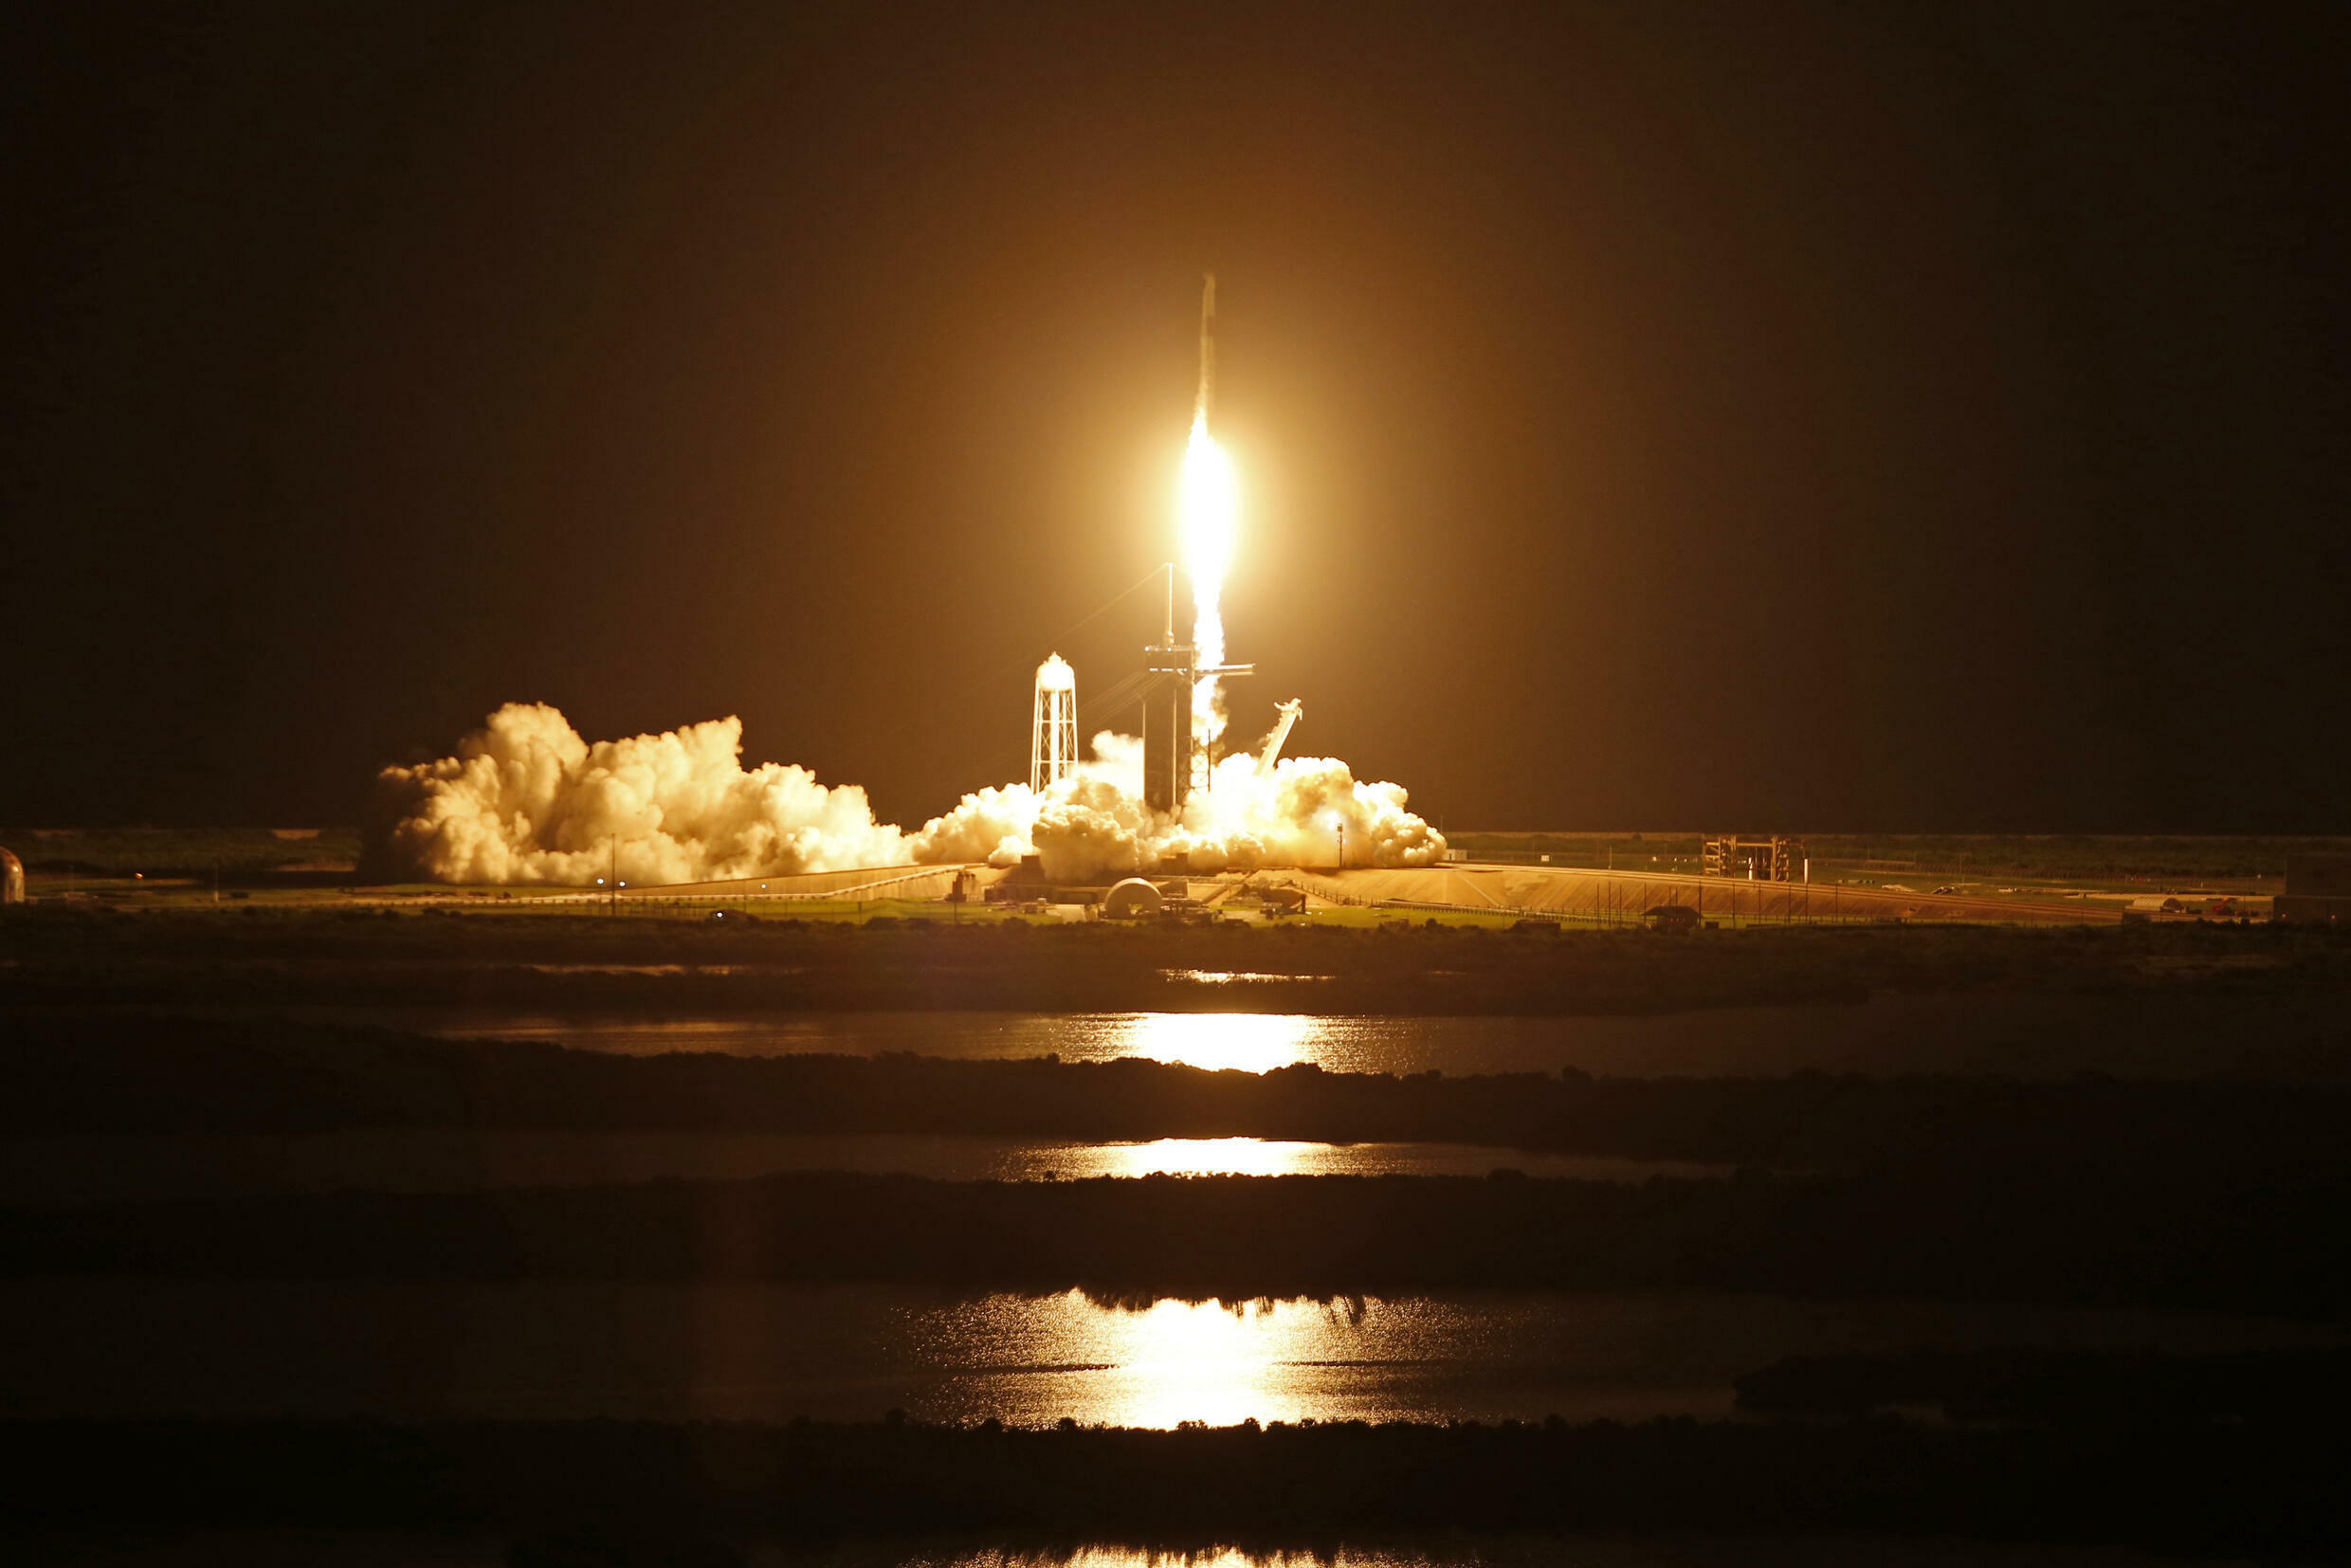 2021-09-16T011224Z_161067636_HP1EH9G03CL0O_RTRMADP_3_SPACE-EXPLORATION-SPACEX